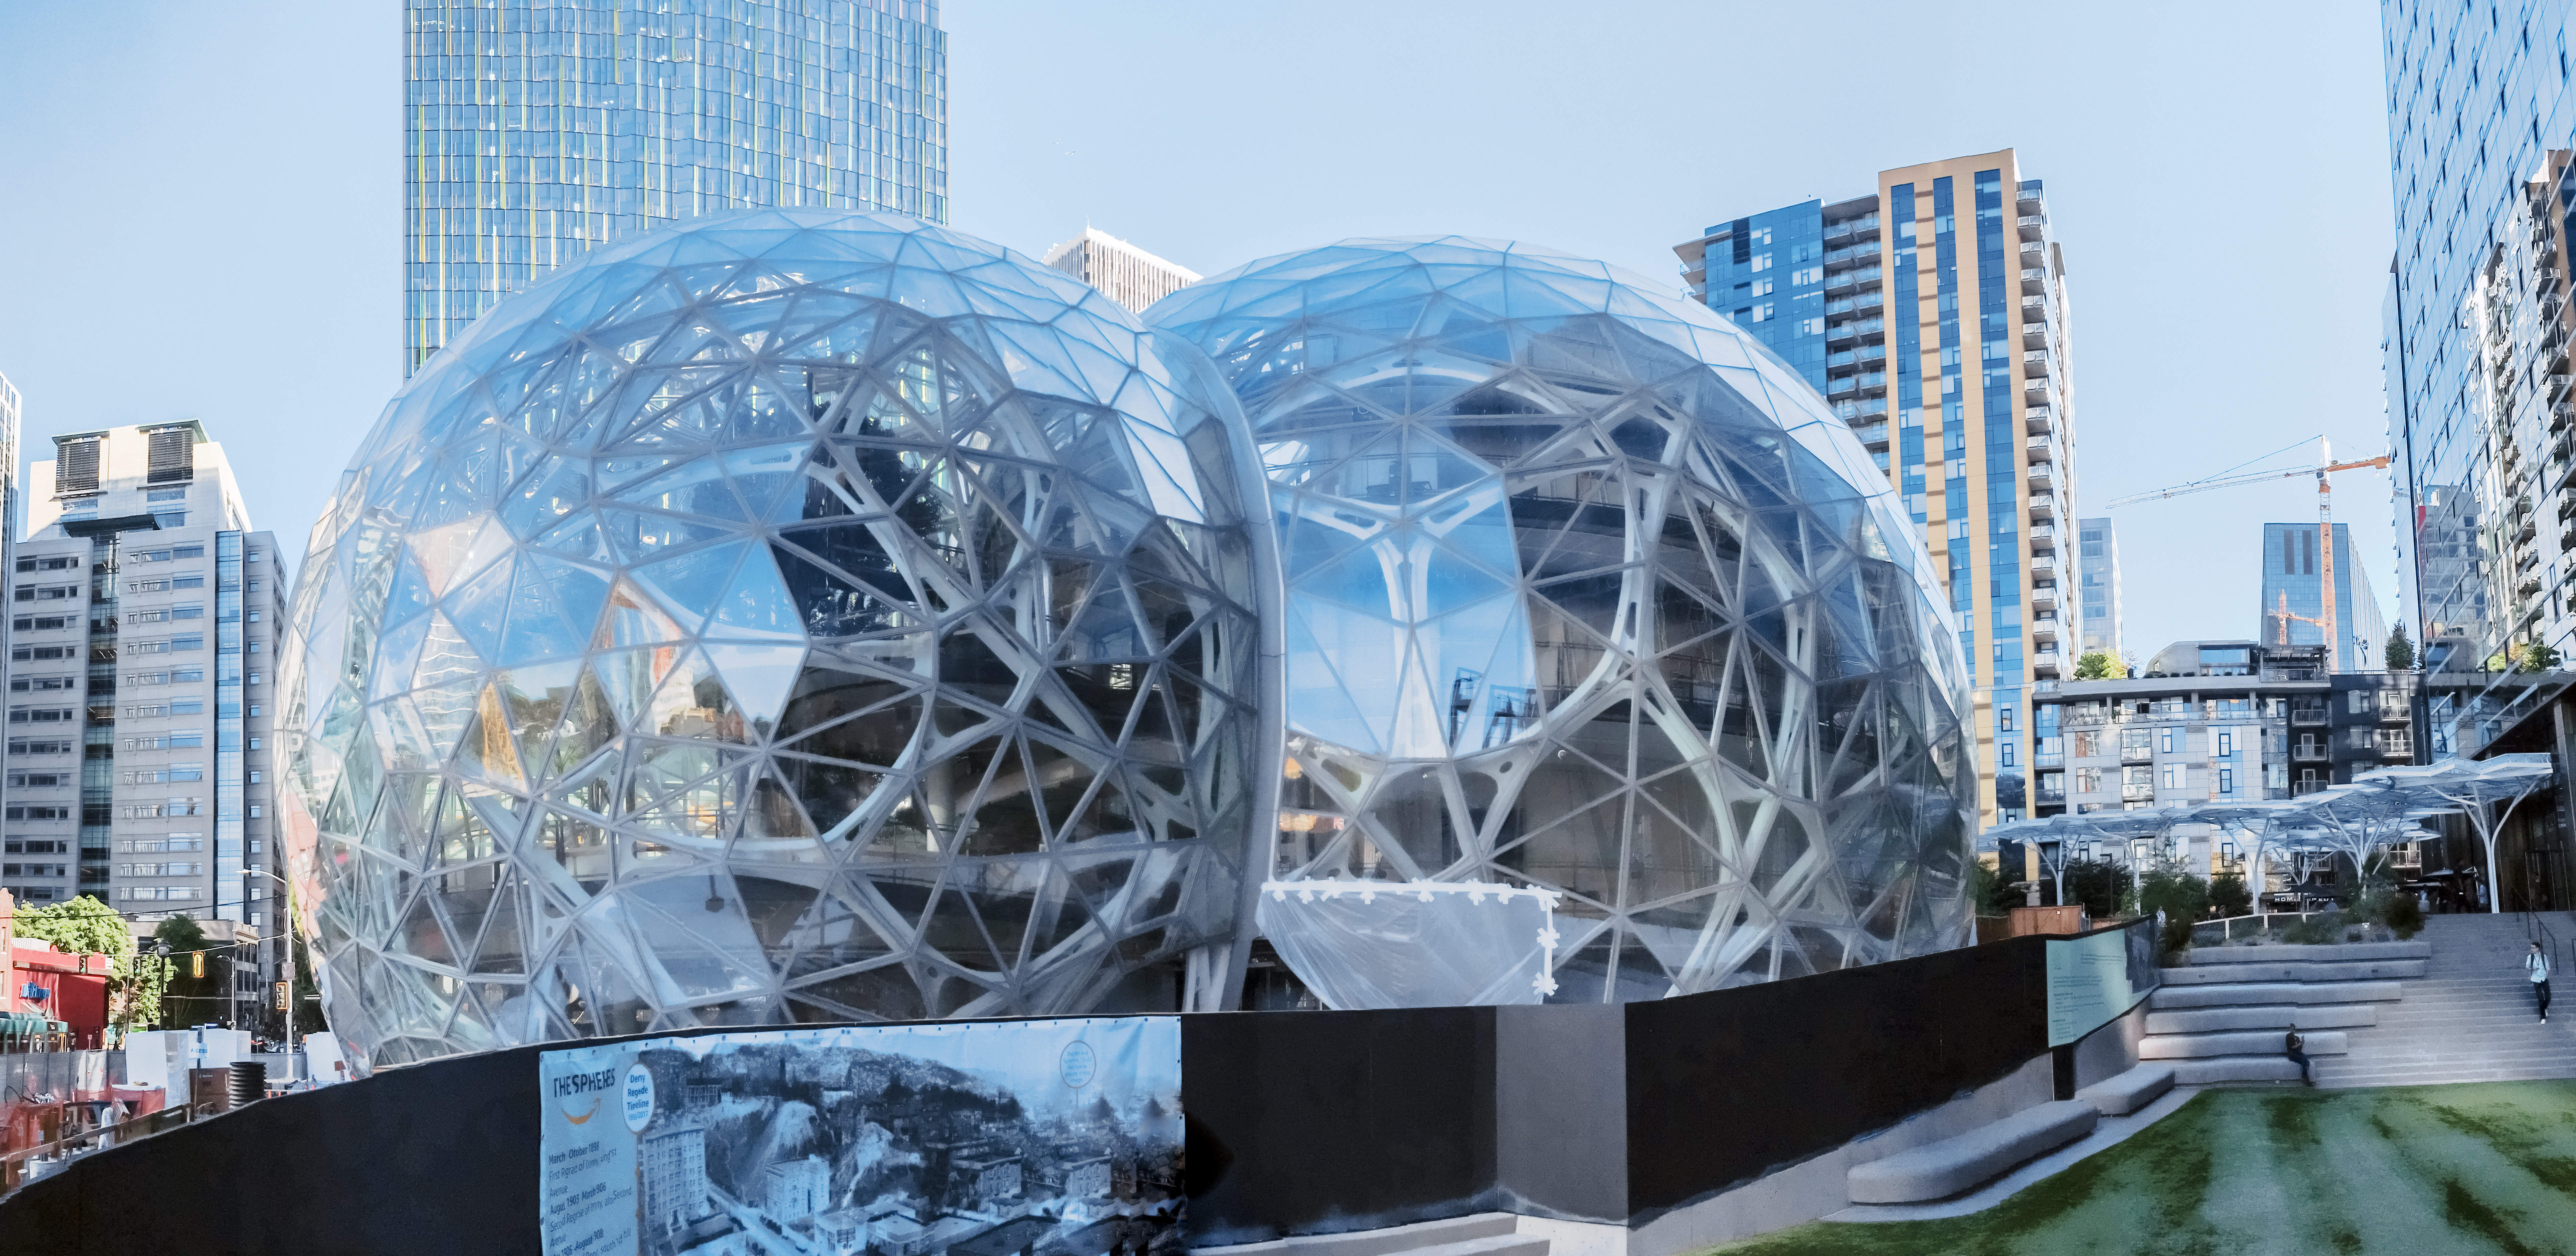 Business or pleasure? The world's most unusual office spaces